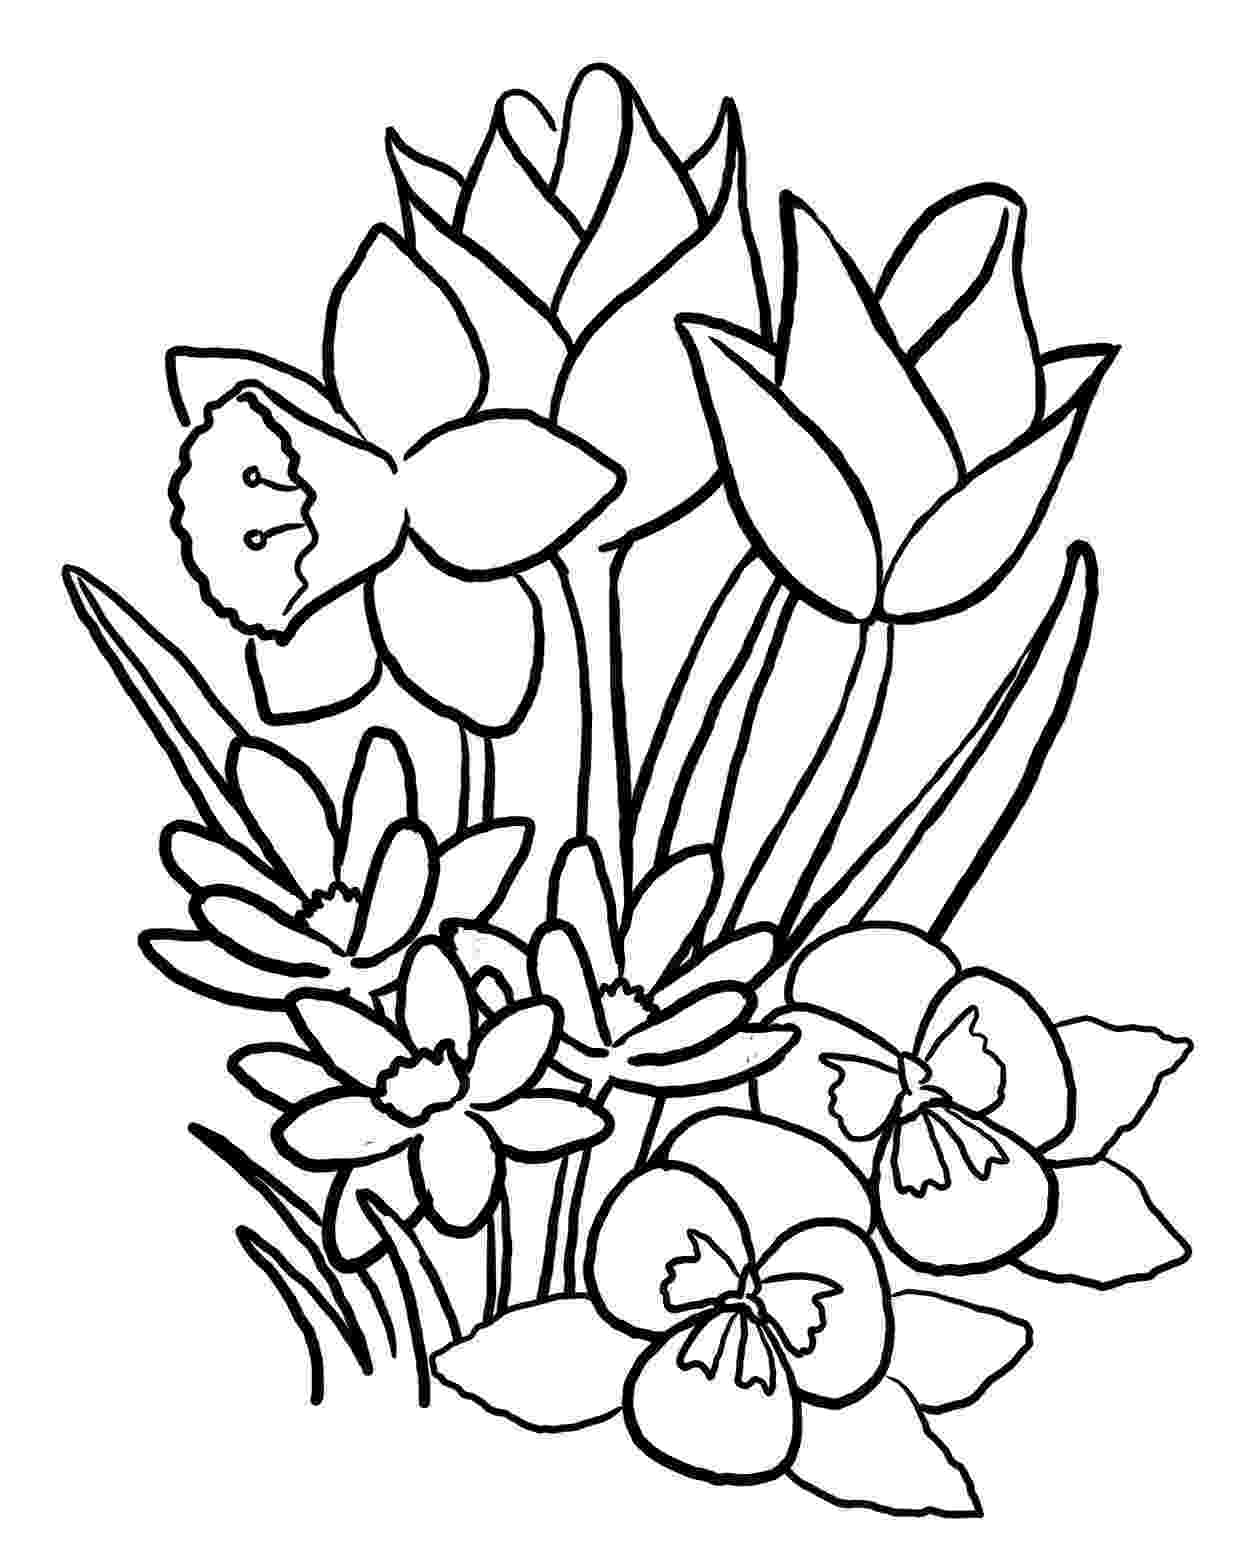 flower printouts flower pictures to print and color flower printouts